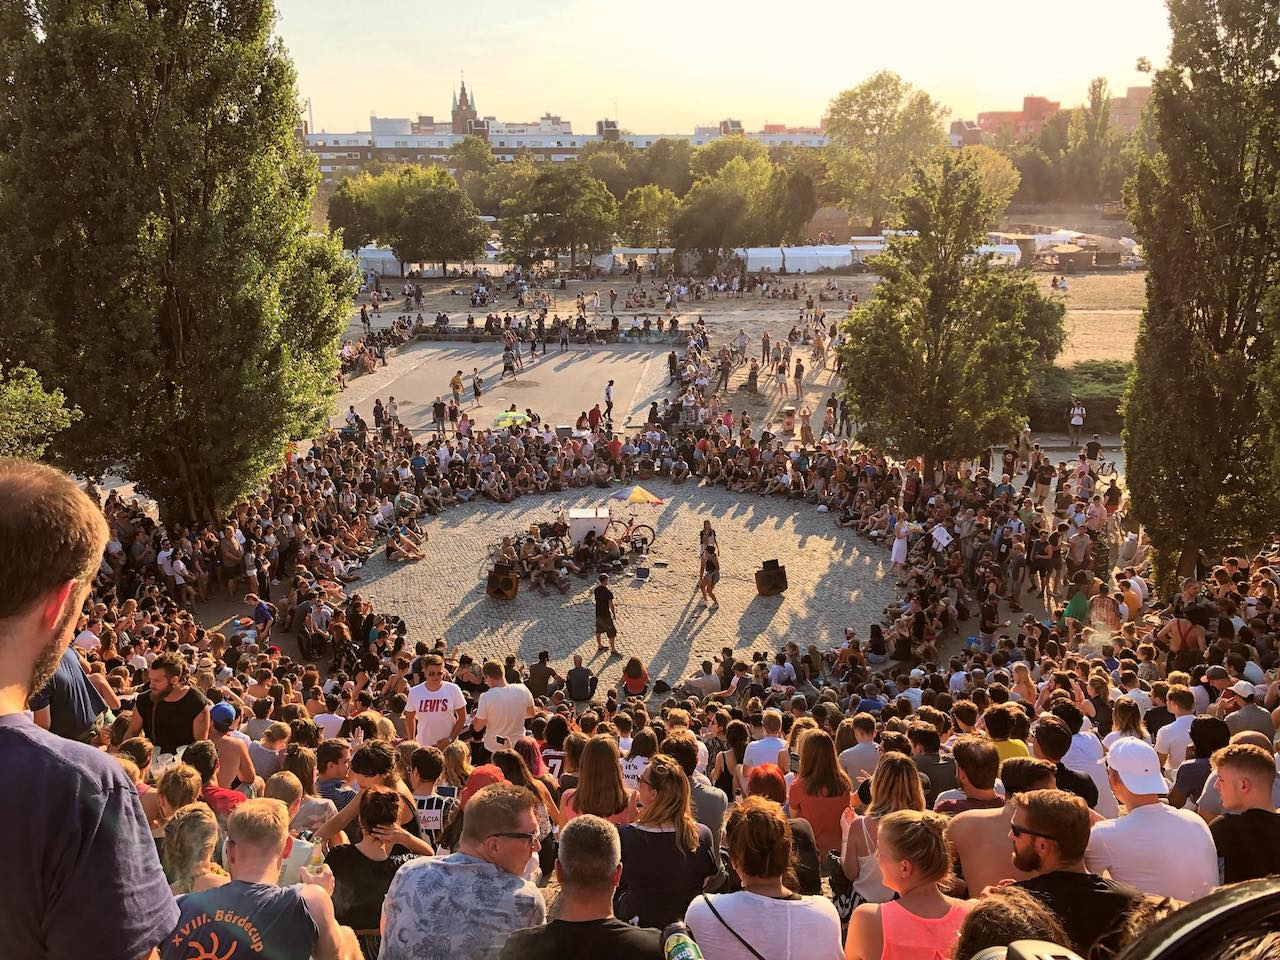 mauerpark, facebook, https://www.facebook.com/mauerpark.berlin/photos/a.10151662774462485/10156560143317485/?type=3&theater